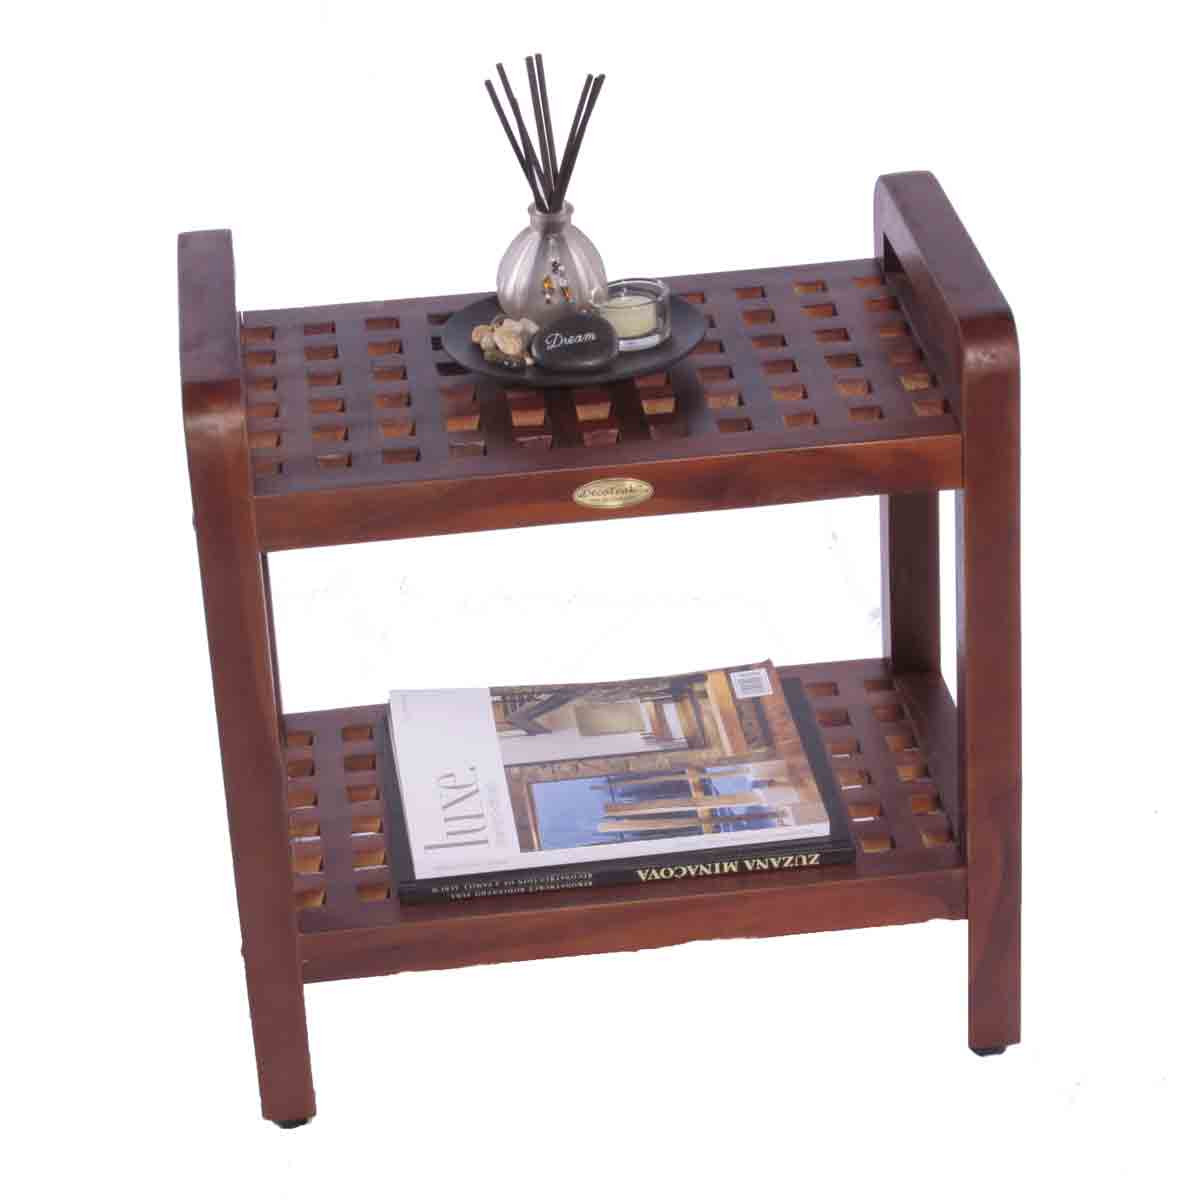 teak shower chairs with arms folding wood contemporary grate bench chair seat stool shelf- 18